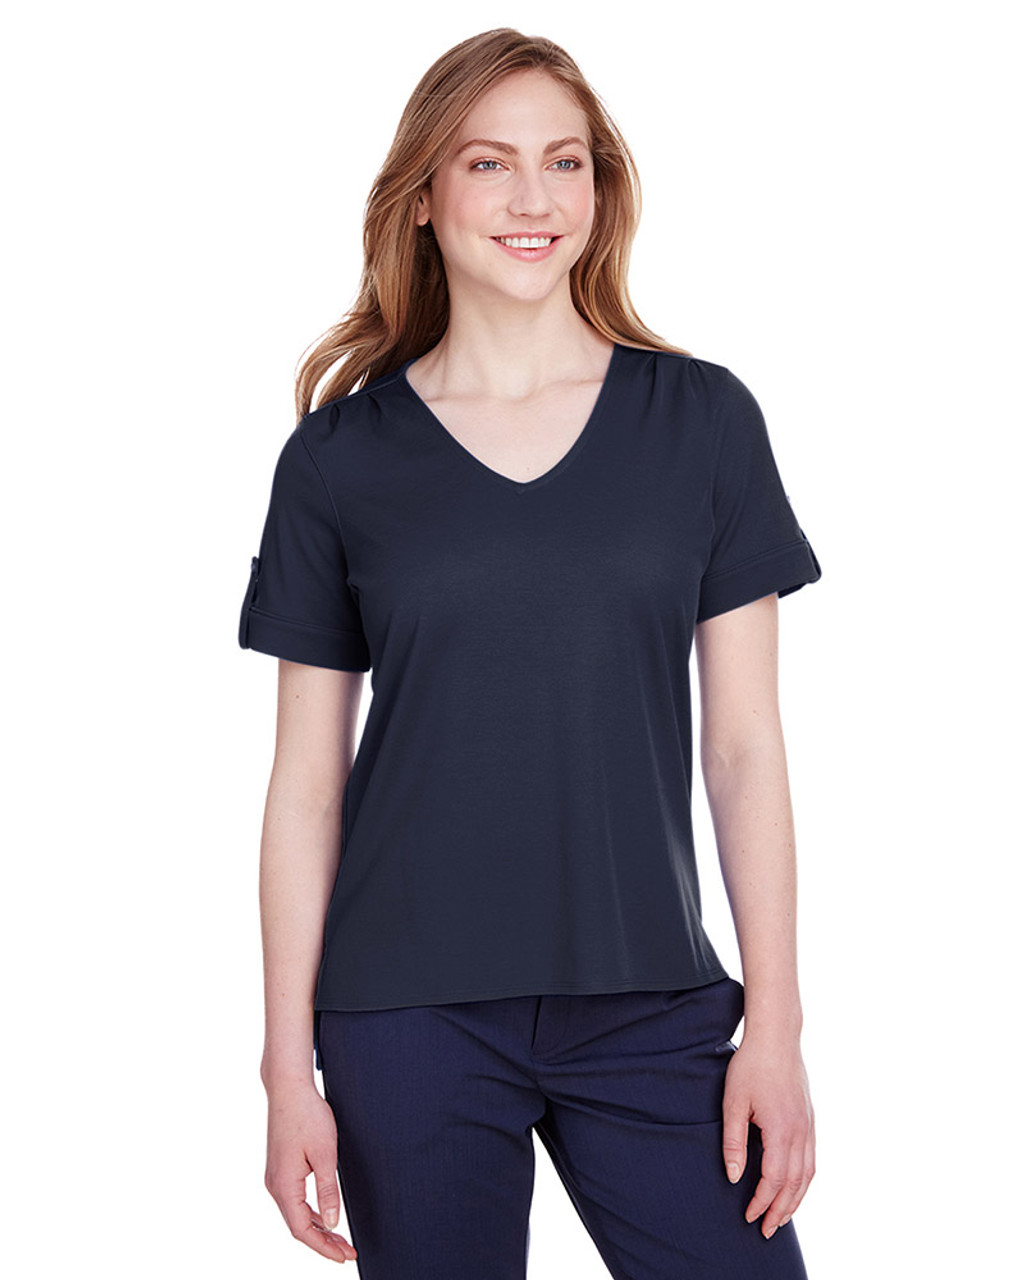 Navy - DG20WB Devon & Jones Ladies' CrownLux Performance™ Plaited Rolled-Sleeve Top | Blankclothing.ca